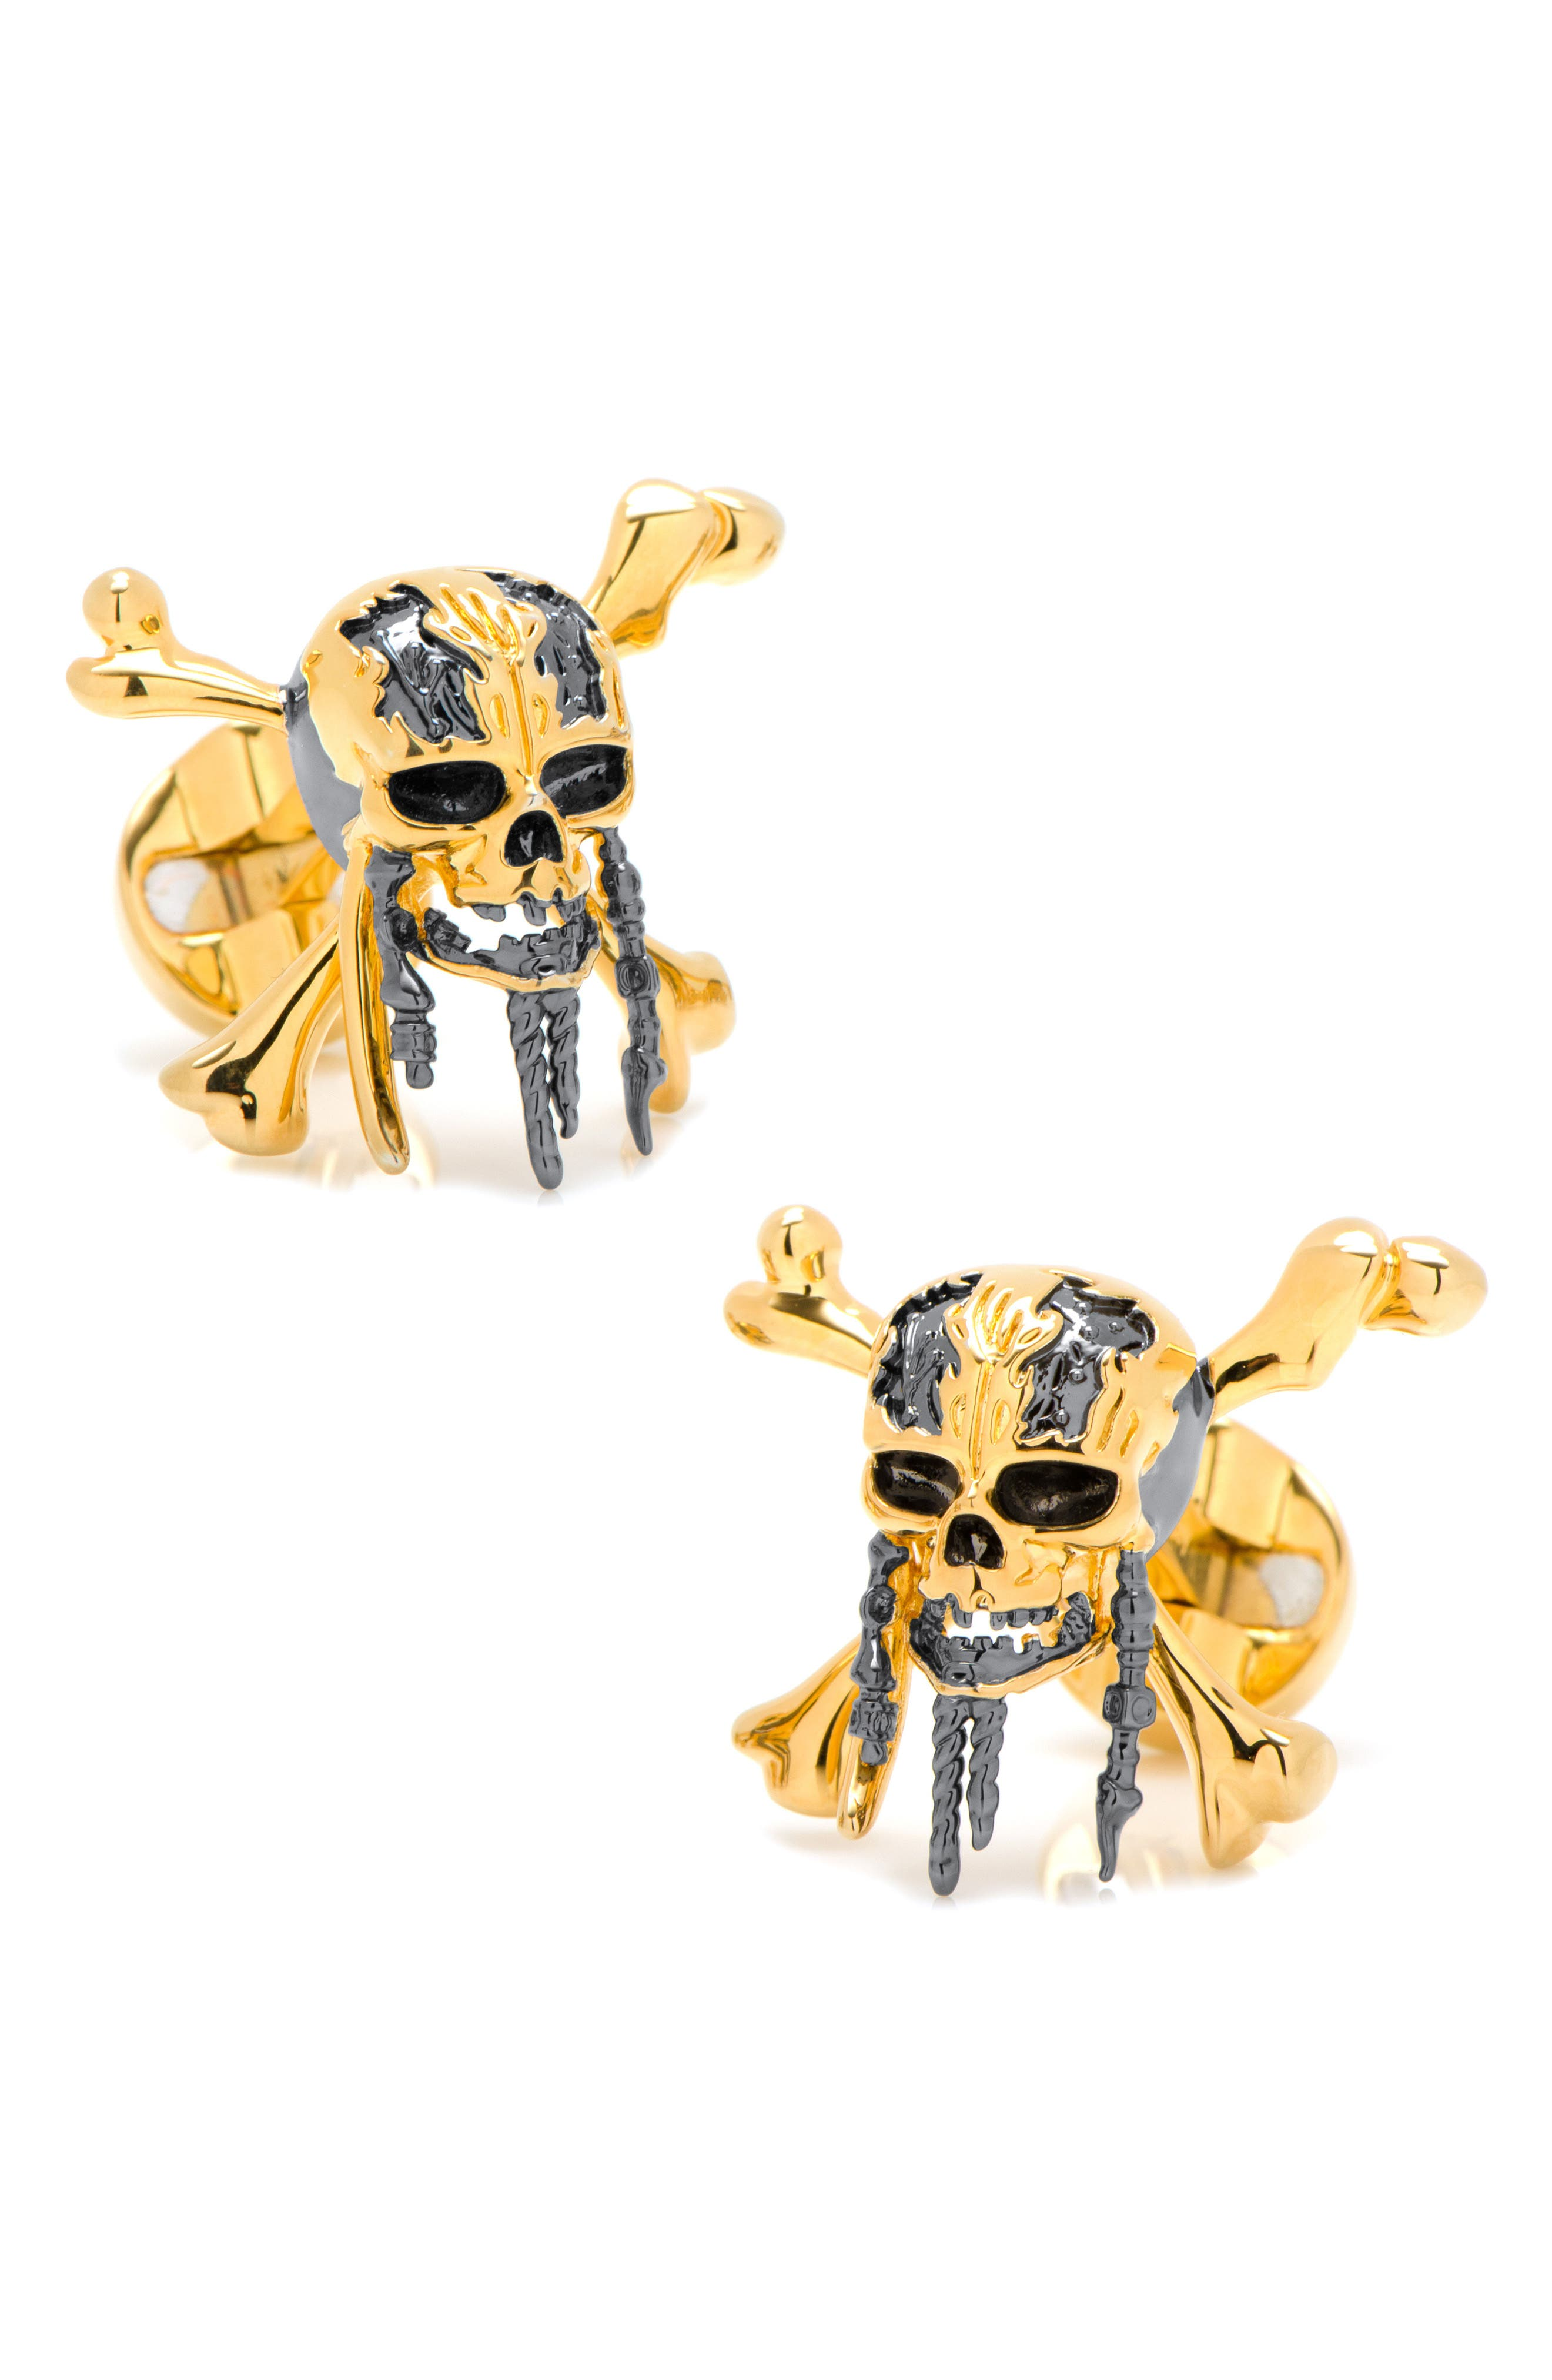 Pirates 3D Skull Cuff Links,                         Main,                         color, 006